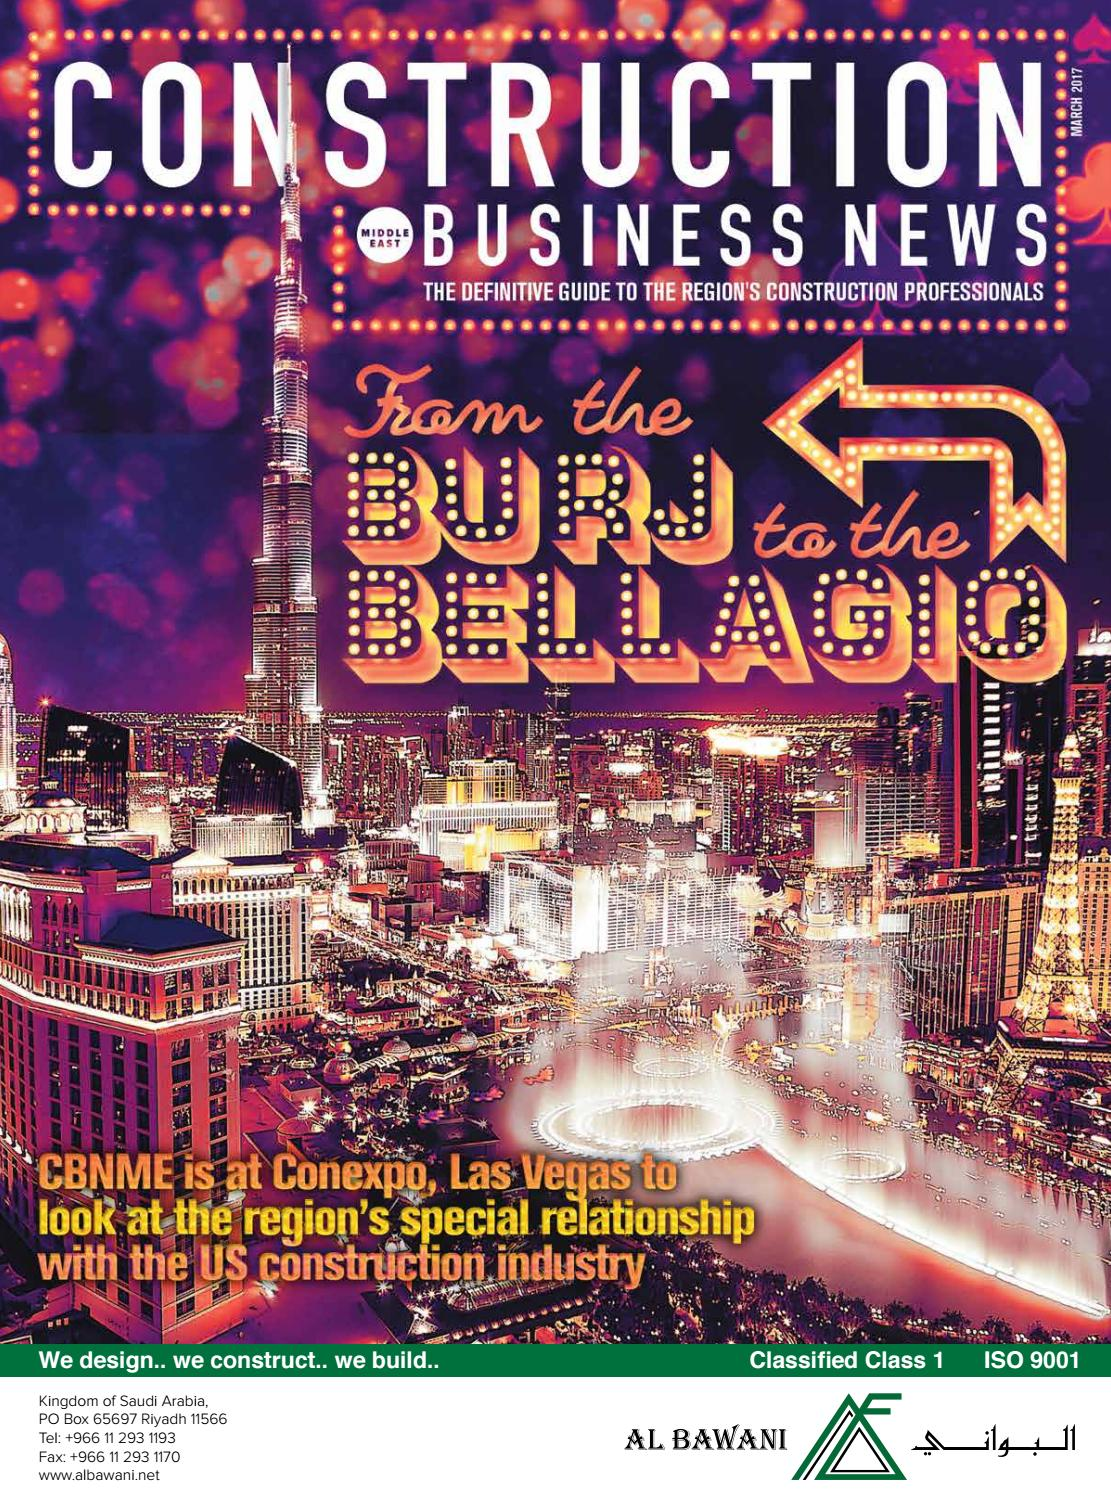 Construction Business News Me March 2017 By Bnc Publishing Issuu Also Electric Fan Wiring Harness Kits Furthermore 2008 Chrysler